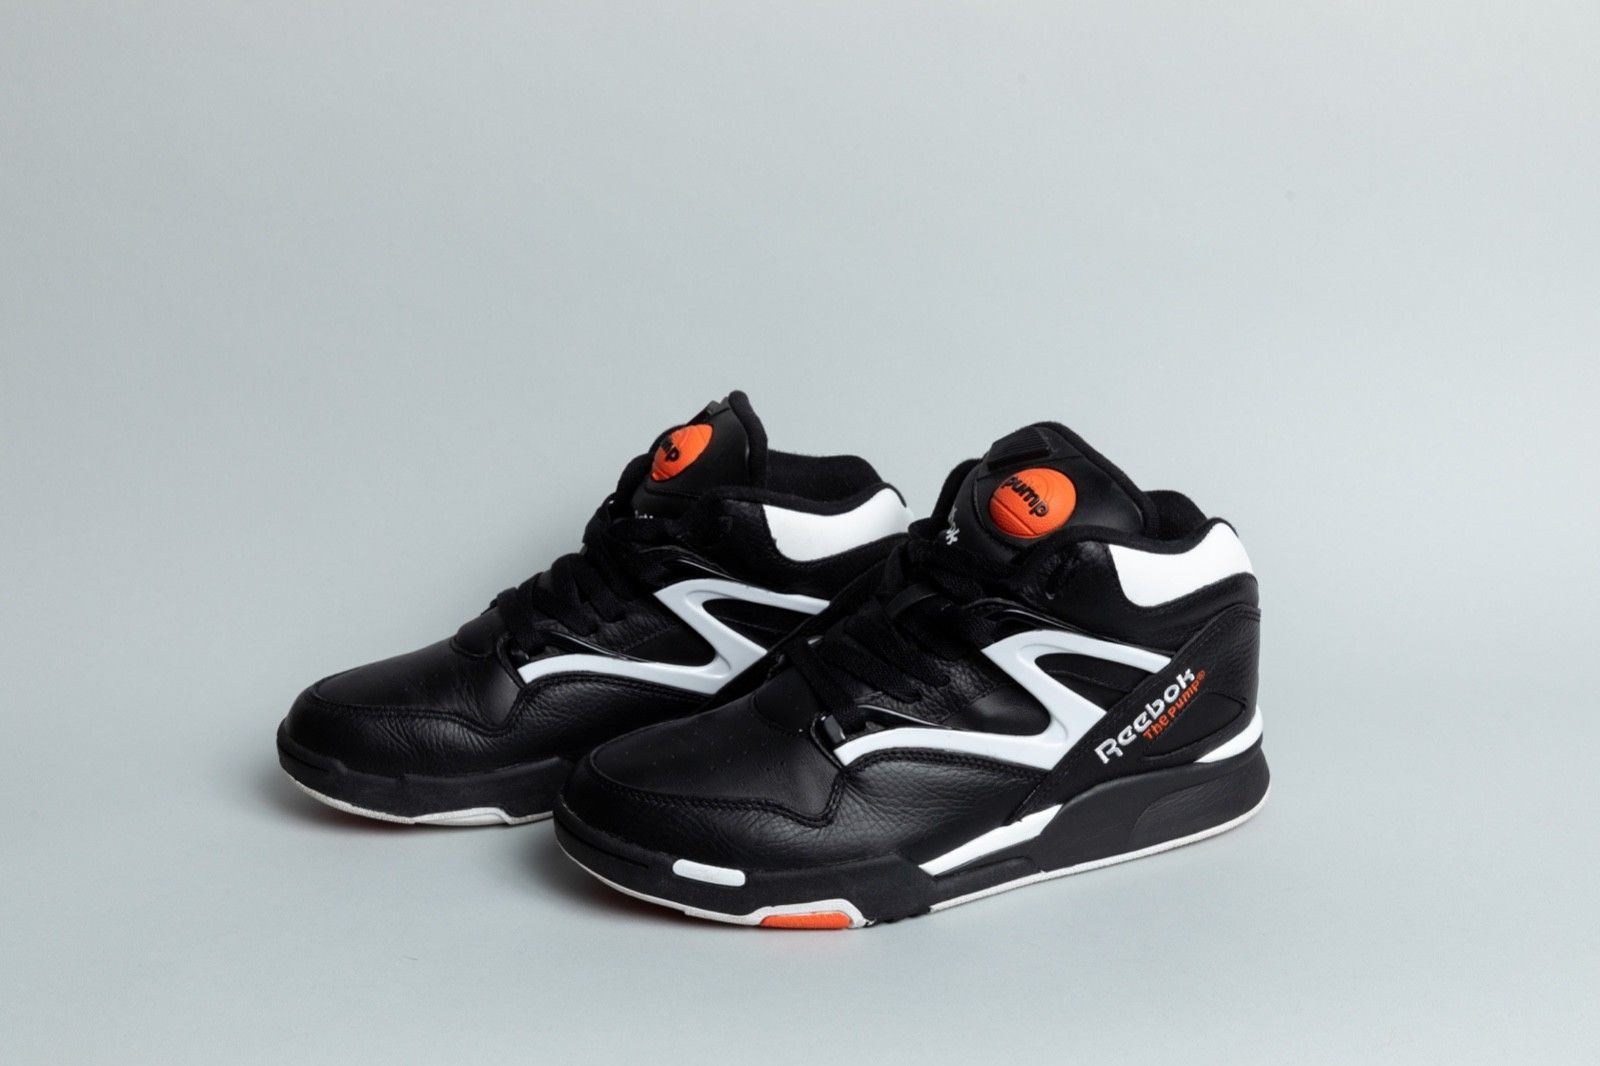 ba3b0182 Details about reebok pump omni lite. New In Box. Size 10.5 in 2019 ...